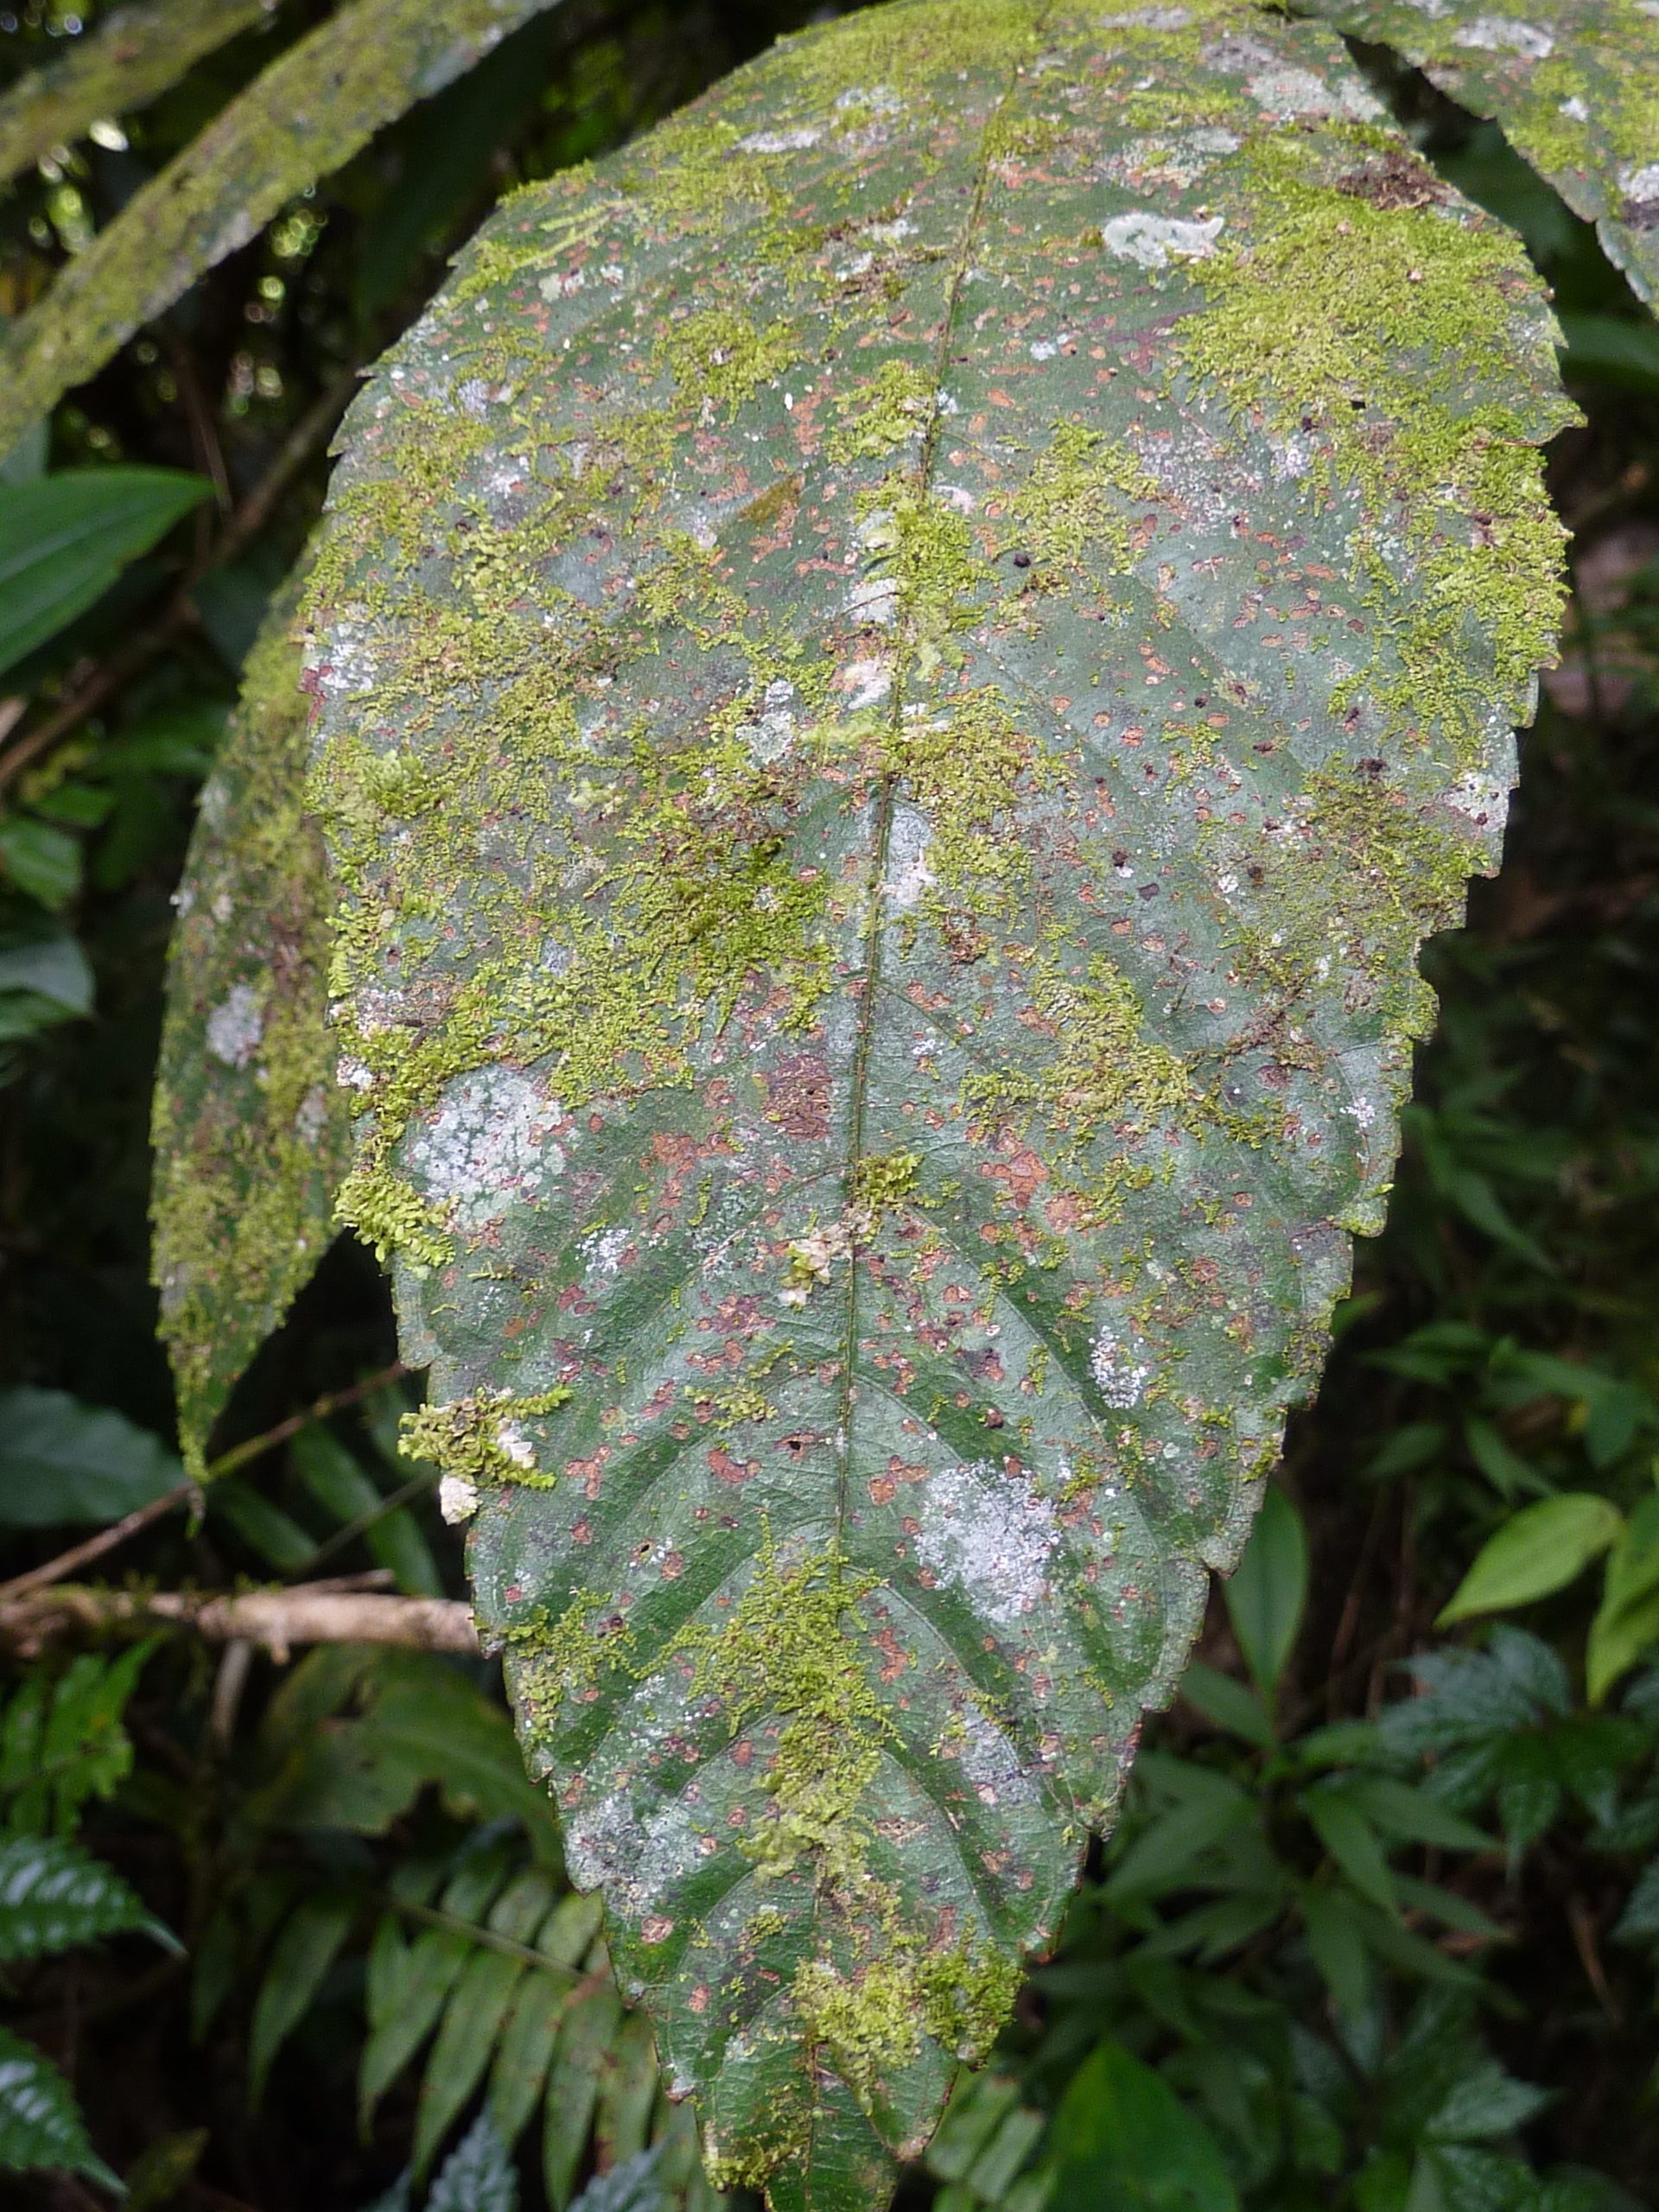 Photos 2: leaf surface can host a number of organisms from bacteria, fungi, bryophytes. A record number was 40+ species of bryophytes on one leaf.Photo by Ekaphan Kraichak.